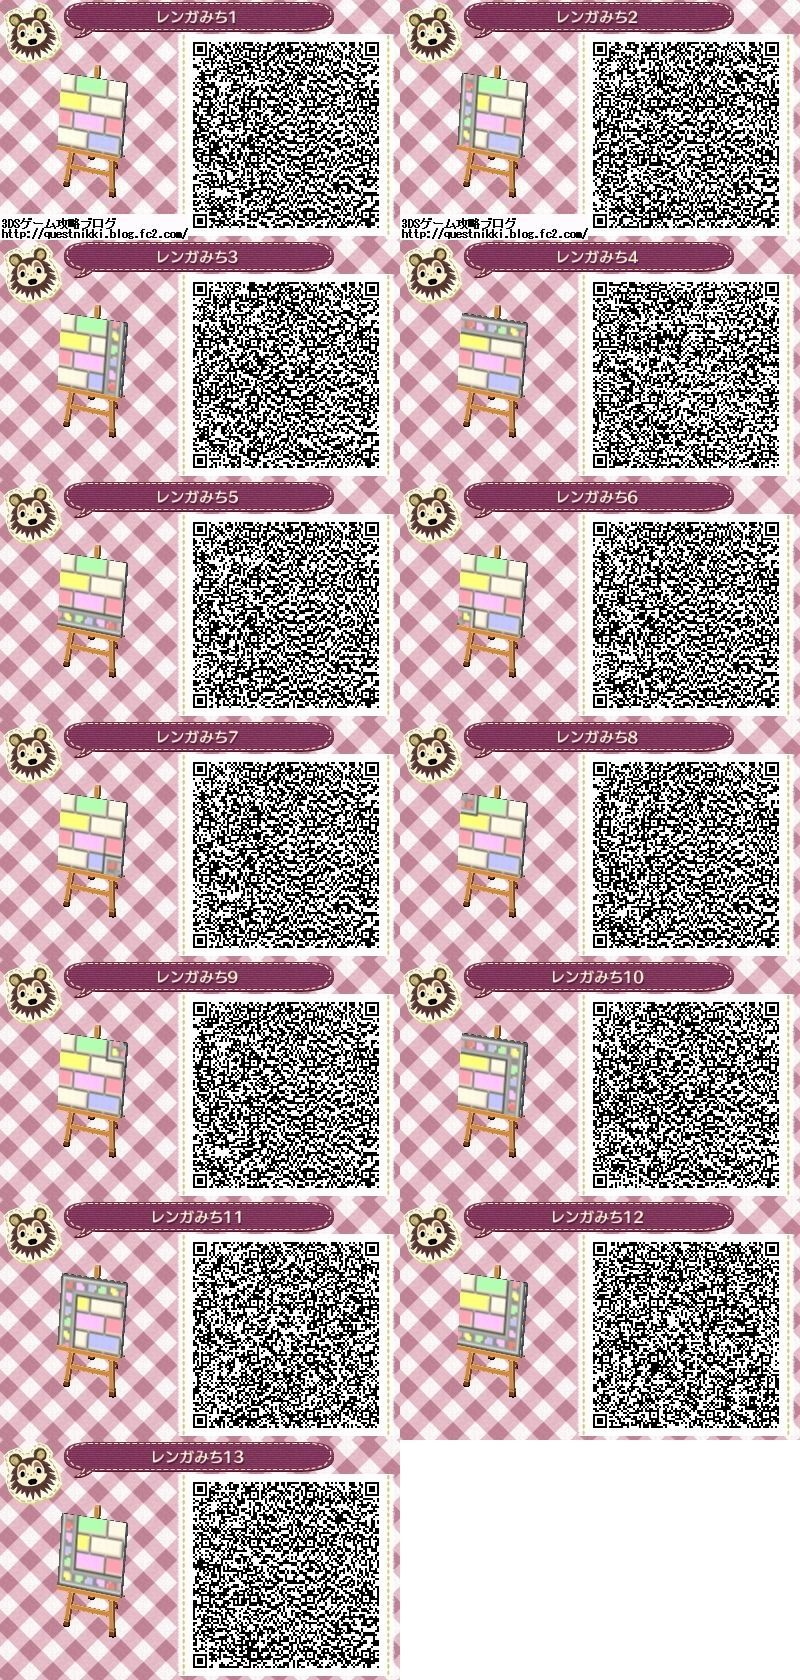 animal crossing qr codes paths white brick